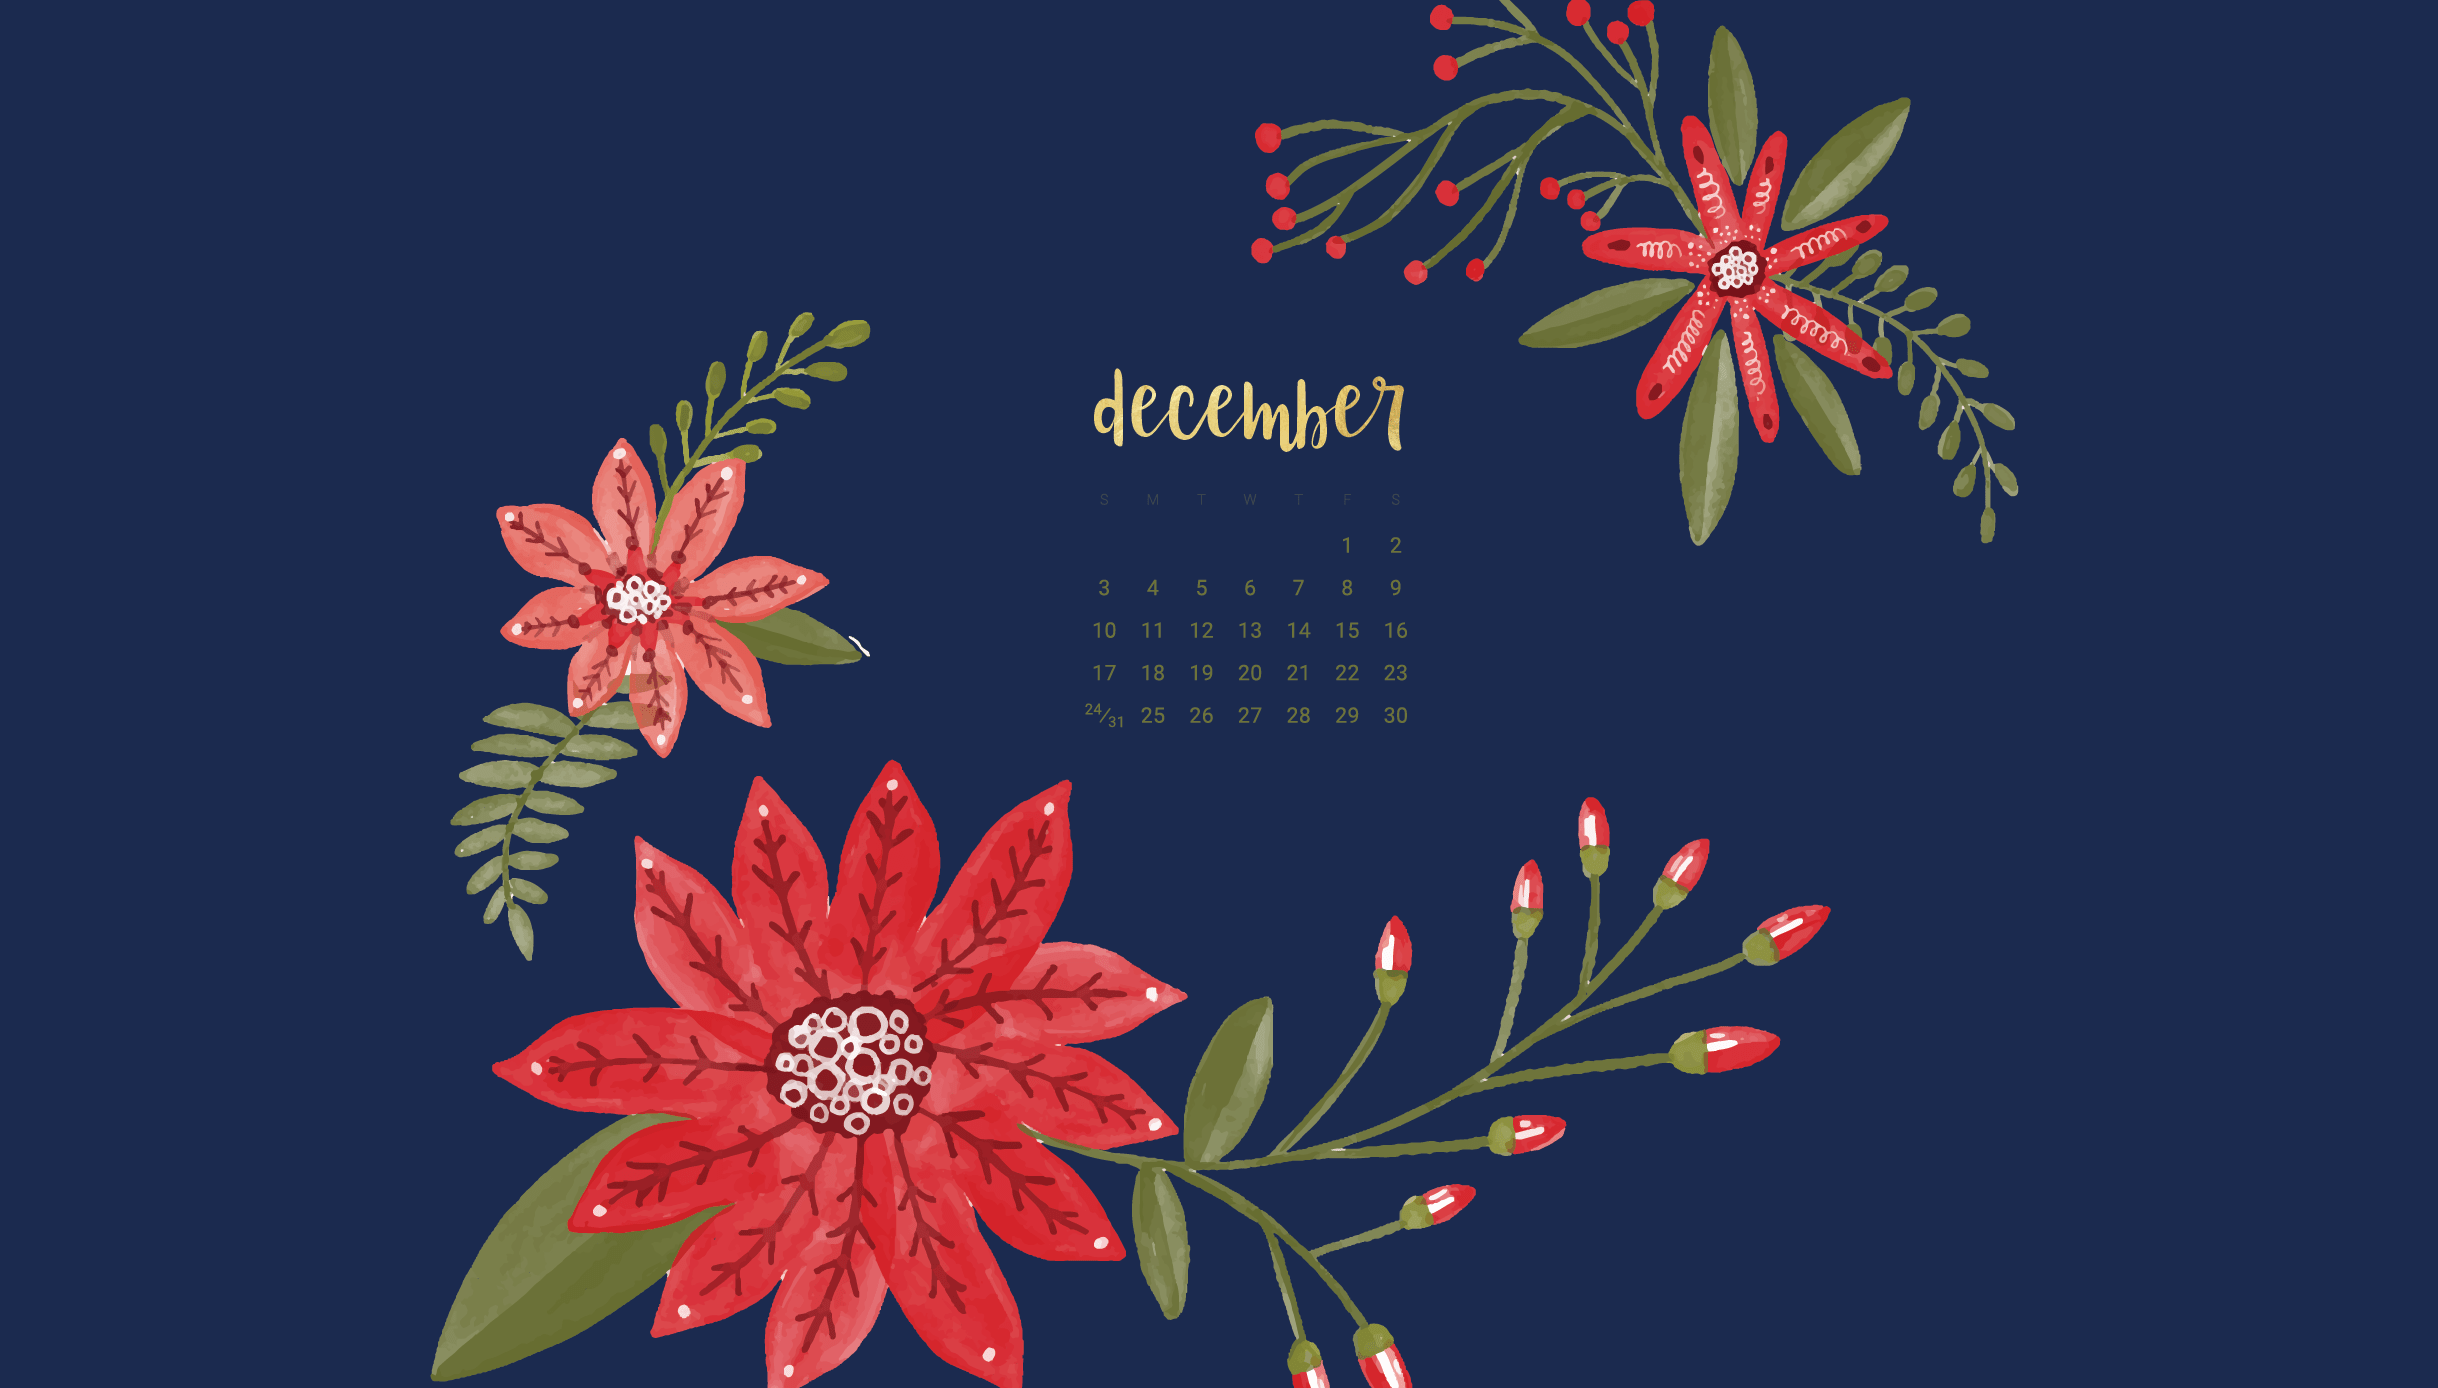 Oh So Lovely Blog Shares 6 Free December 2017 Desktop And Smart Phone Wallpapers In Both S Free Wallpaper Desktop Calendar Wallpaper Desktop Wallpaper Calendar